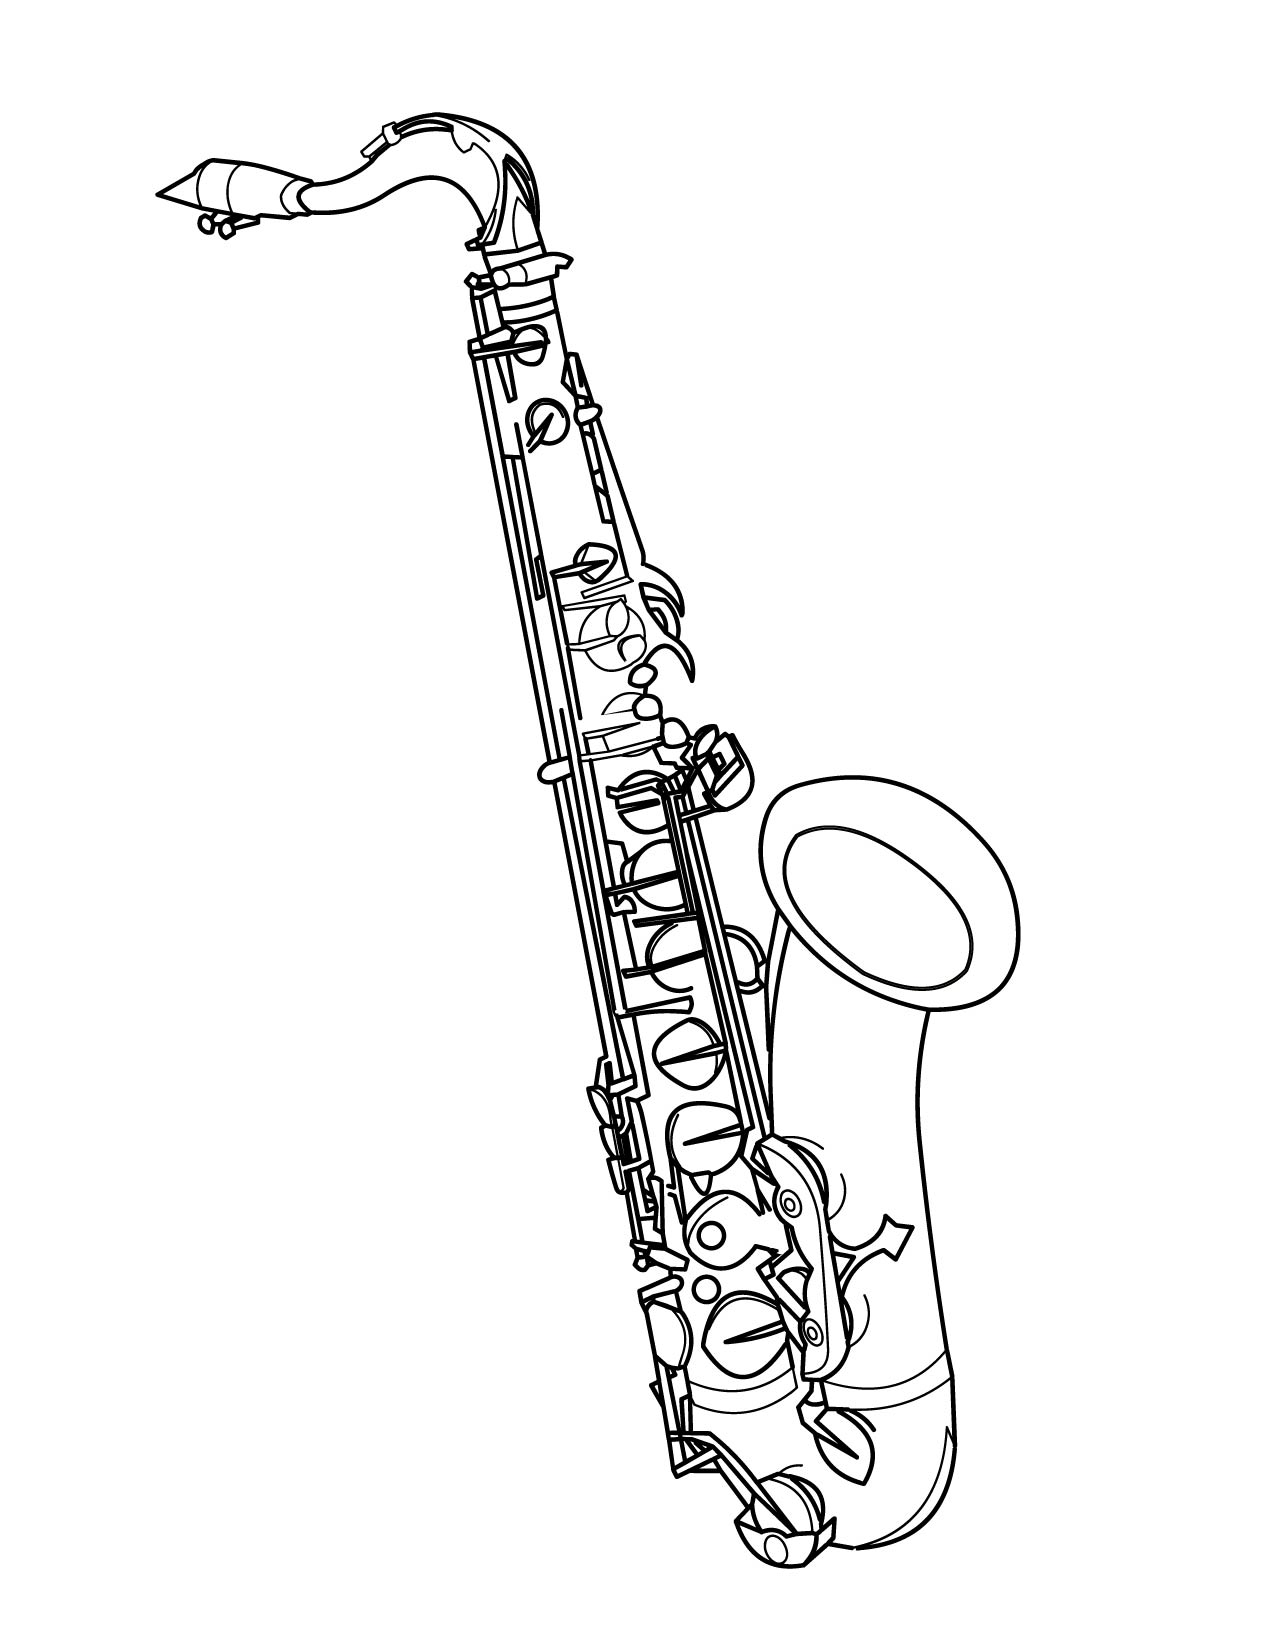 Free coloring pages of jazz musical